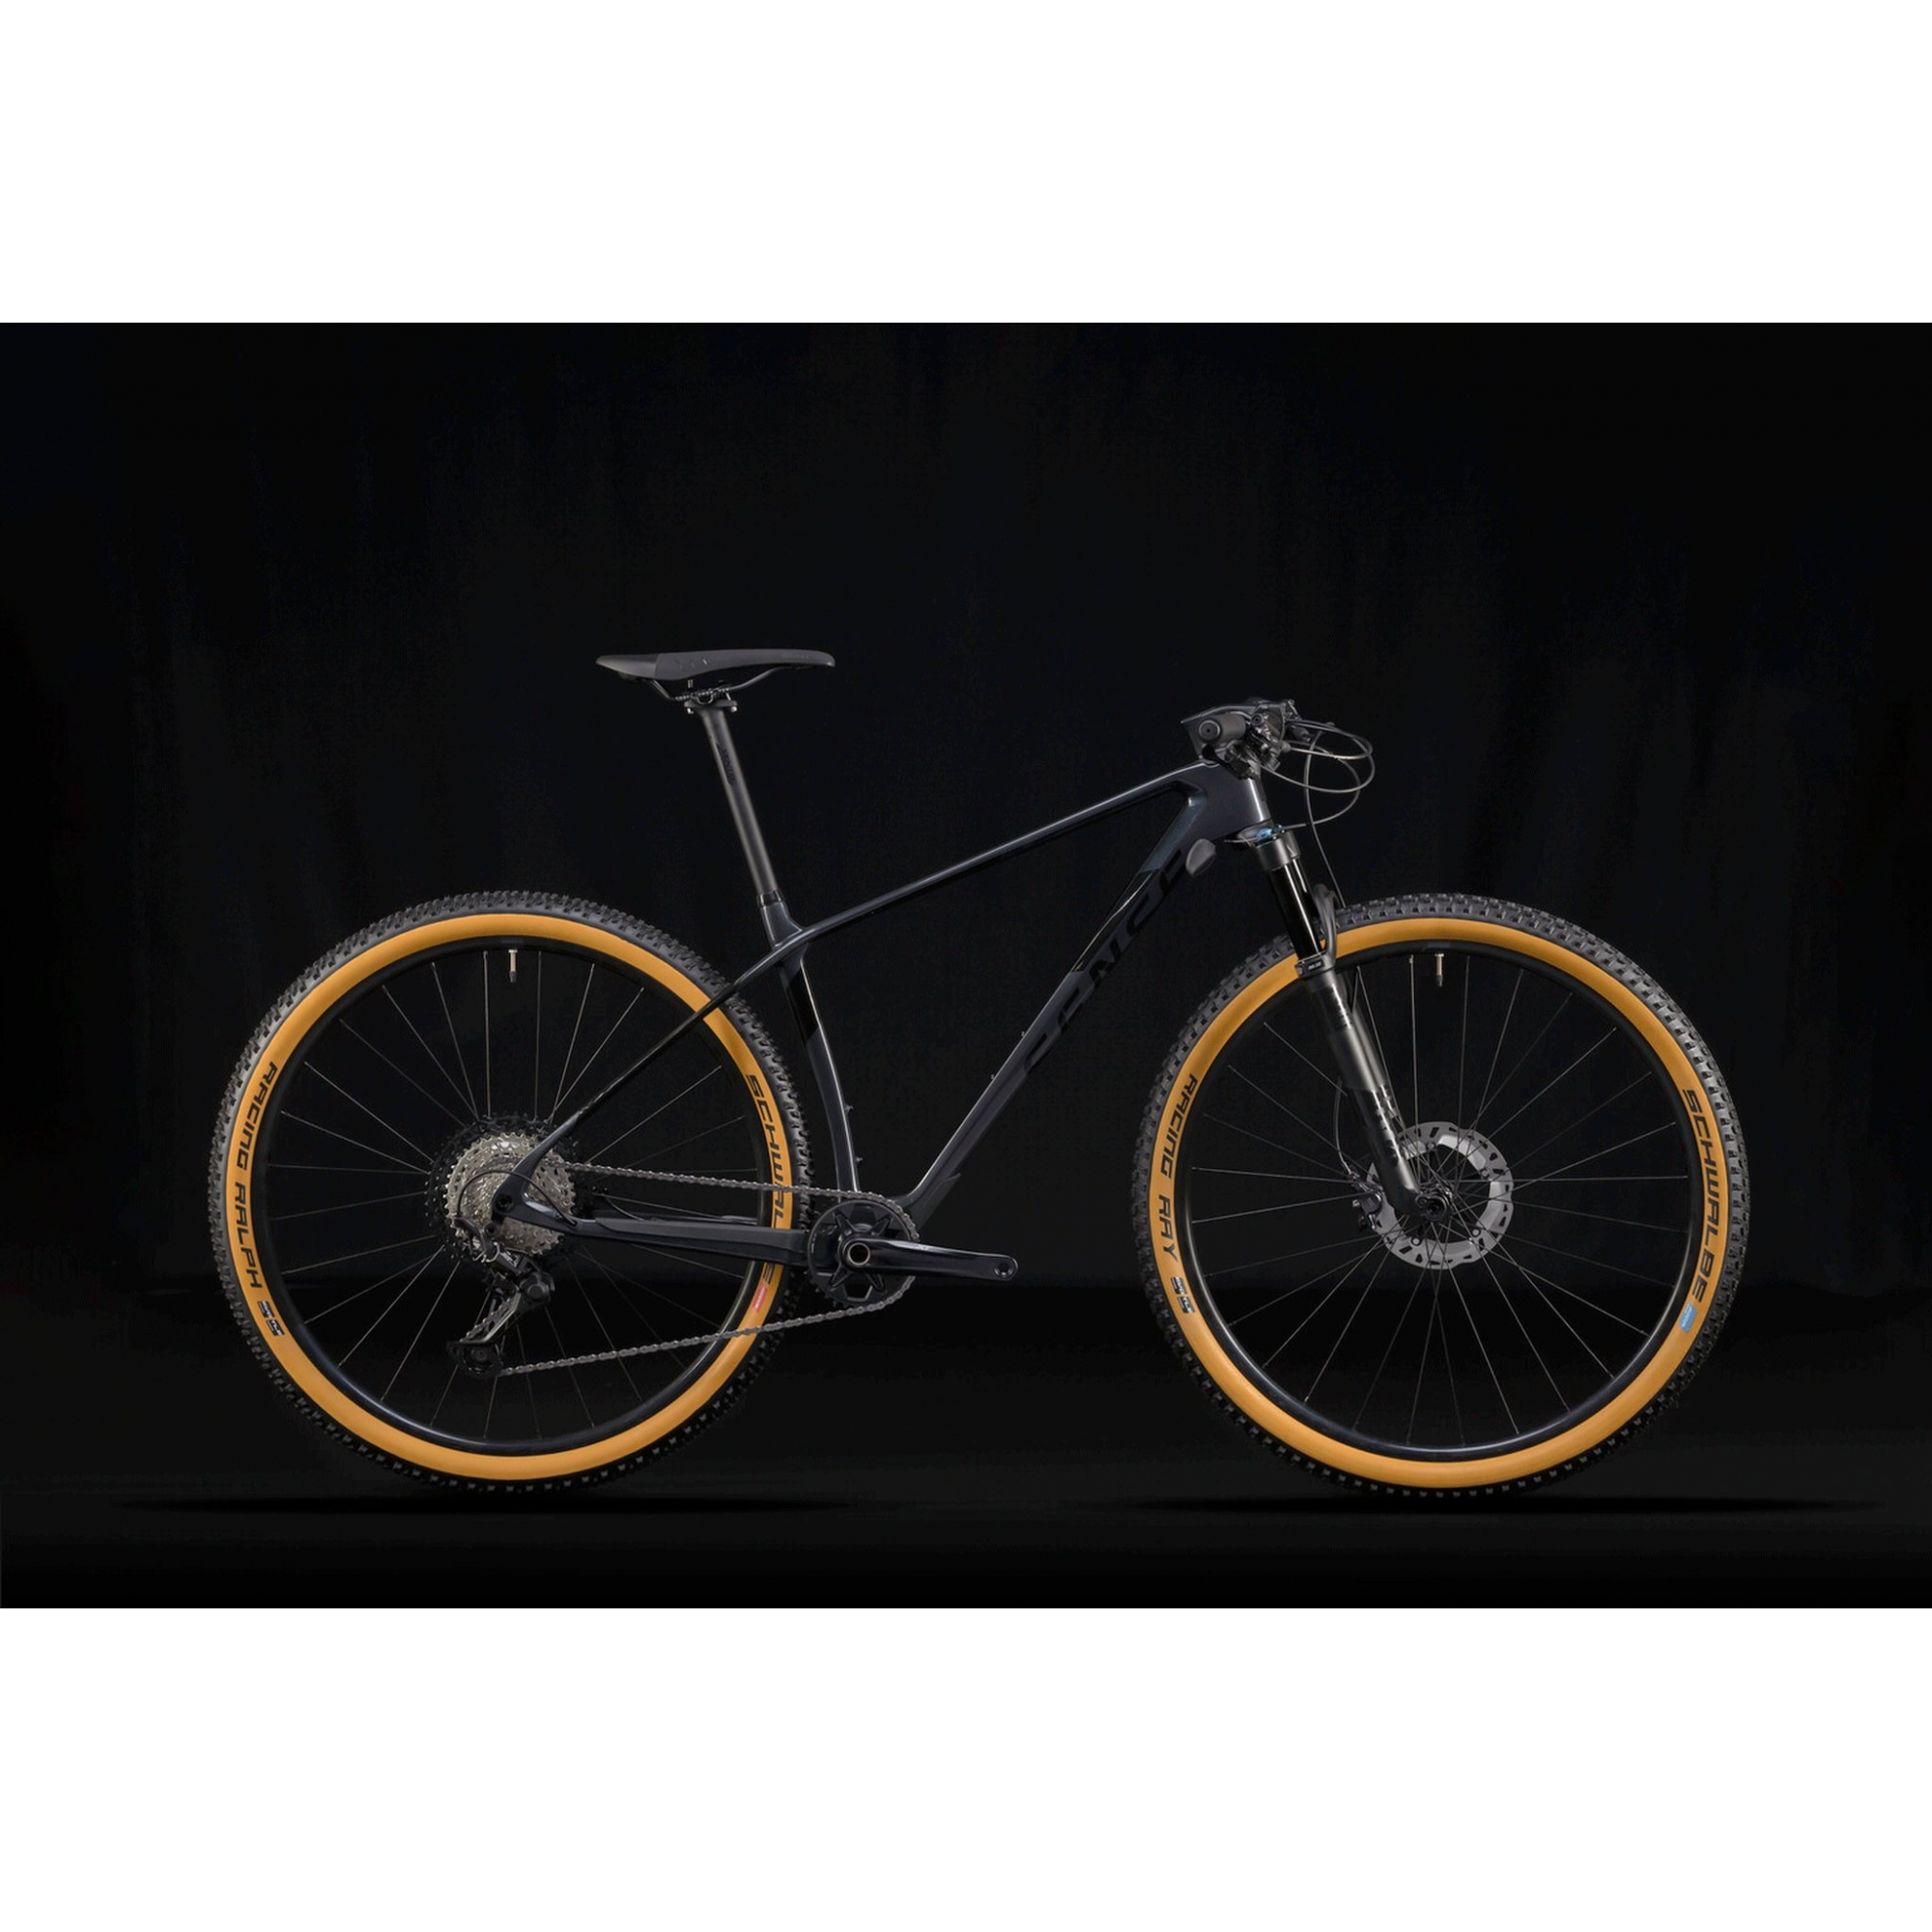 Bicicleta SENSE Impact Carbon Evo 2021 - 12v Shimano XT - Suspensão Fox Float 32 Performance 100mm - Cinza/Preto